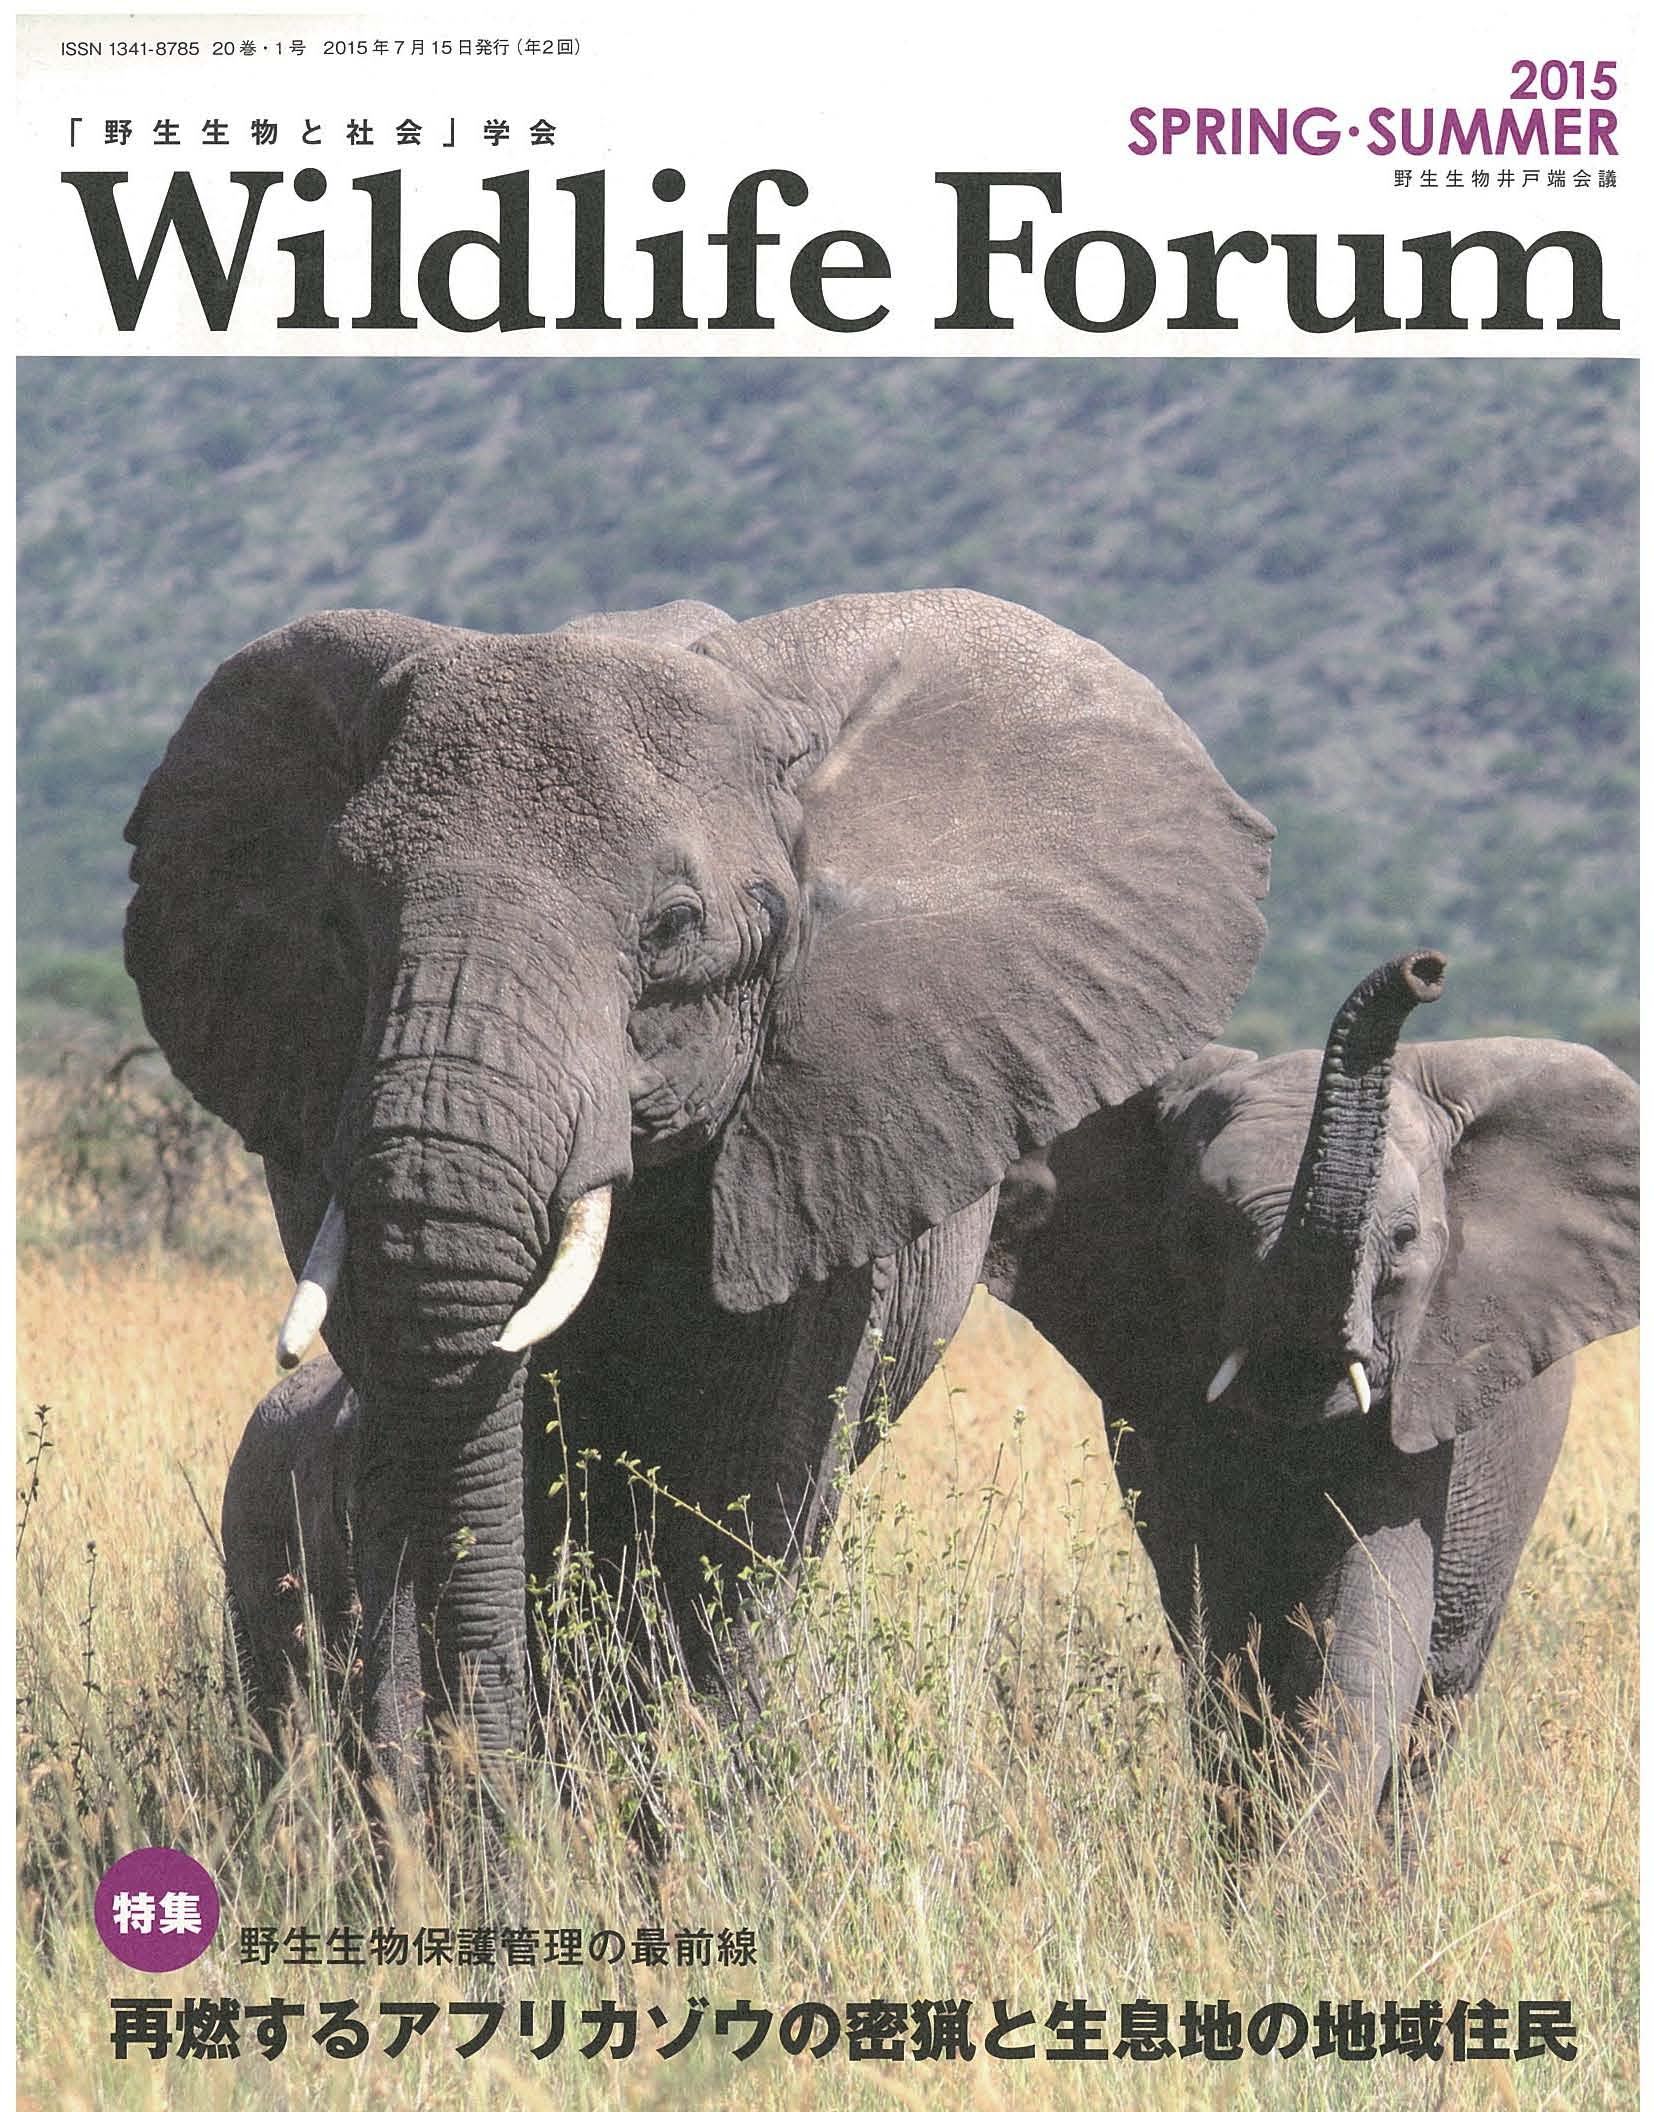 Wildlife FORUM 20巻1号